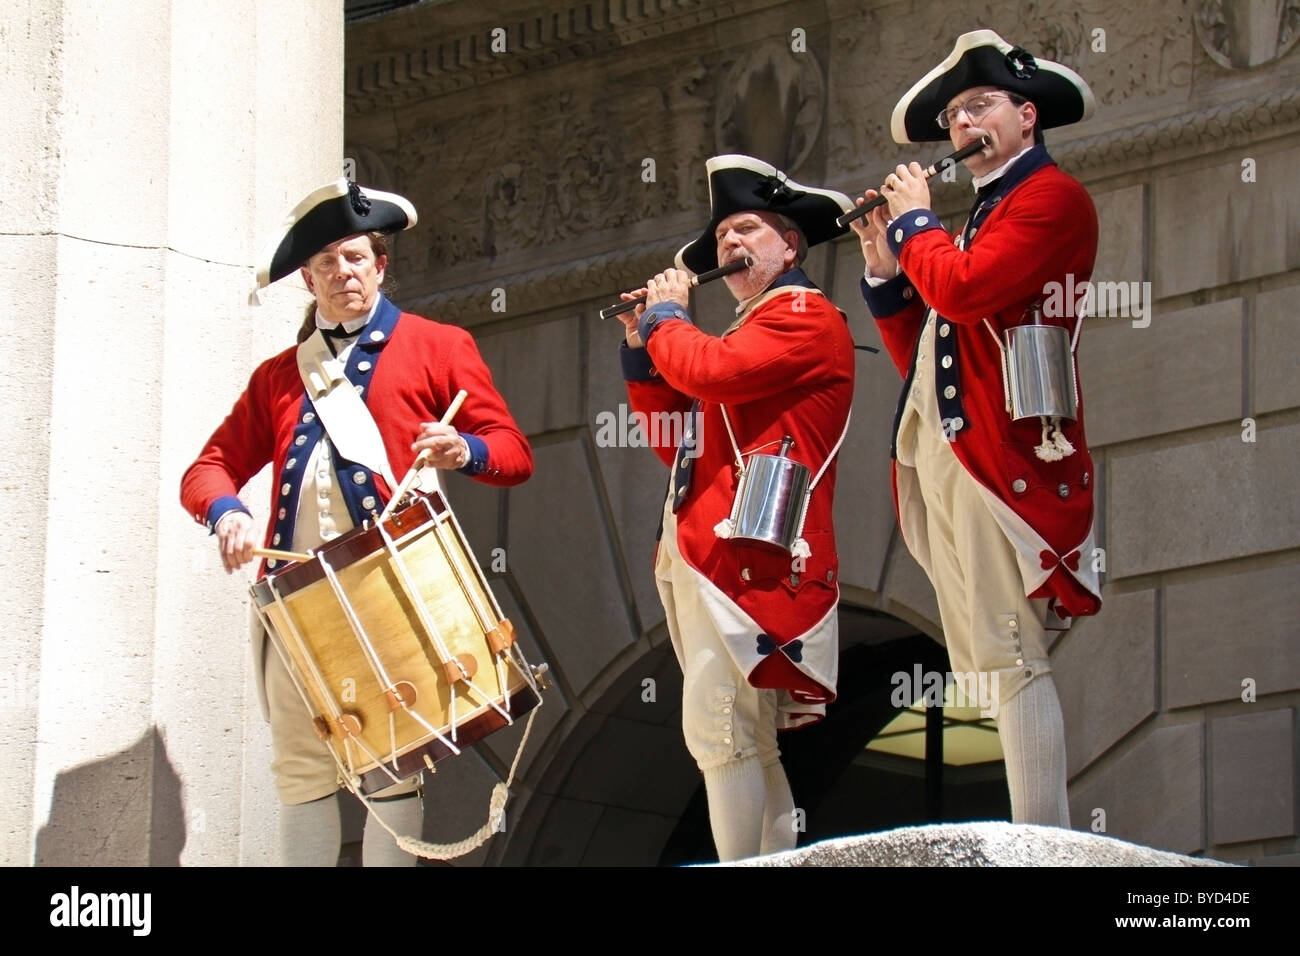 May 01, 2010, New York. Drum and Fife band playing at Federal Hall NYC. - Stock Image